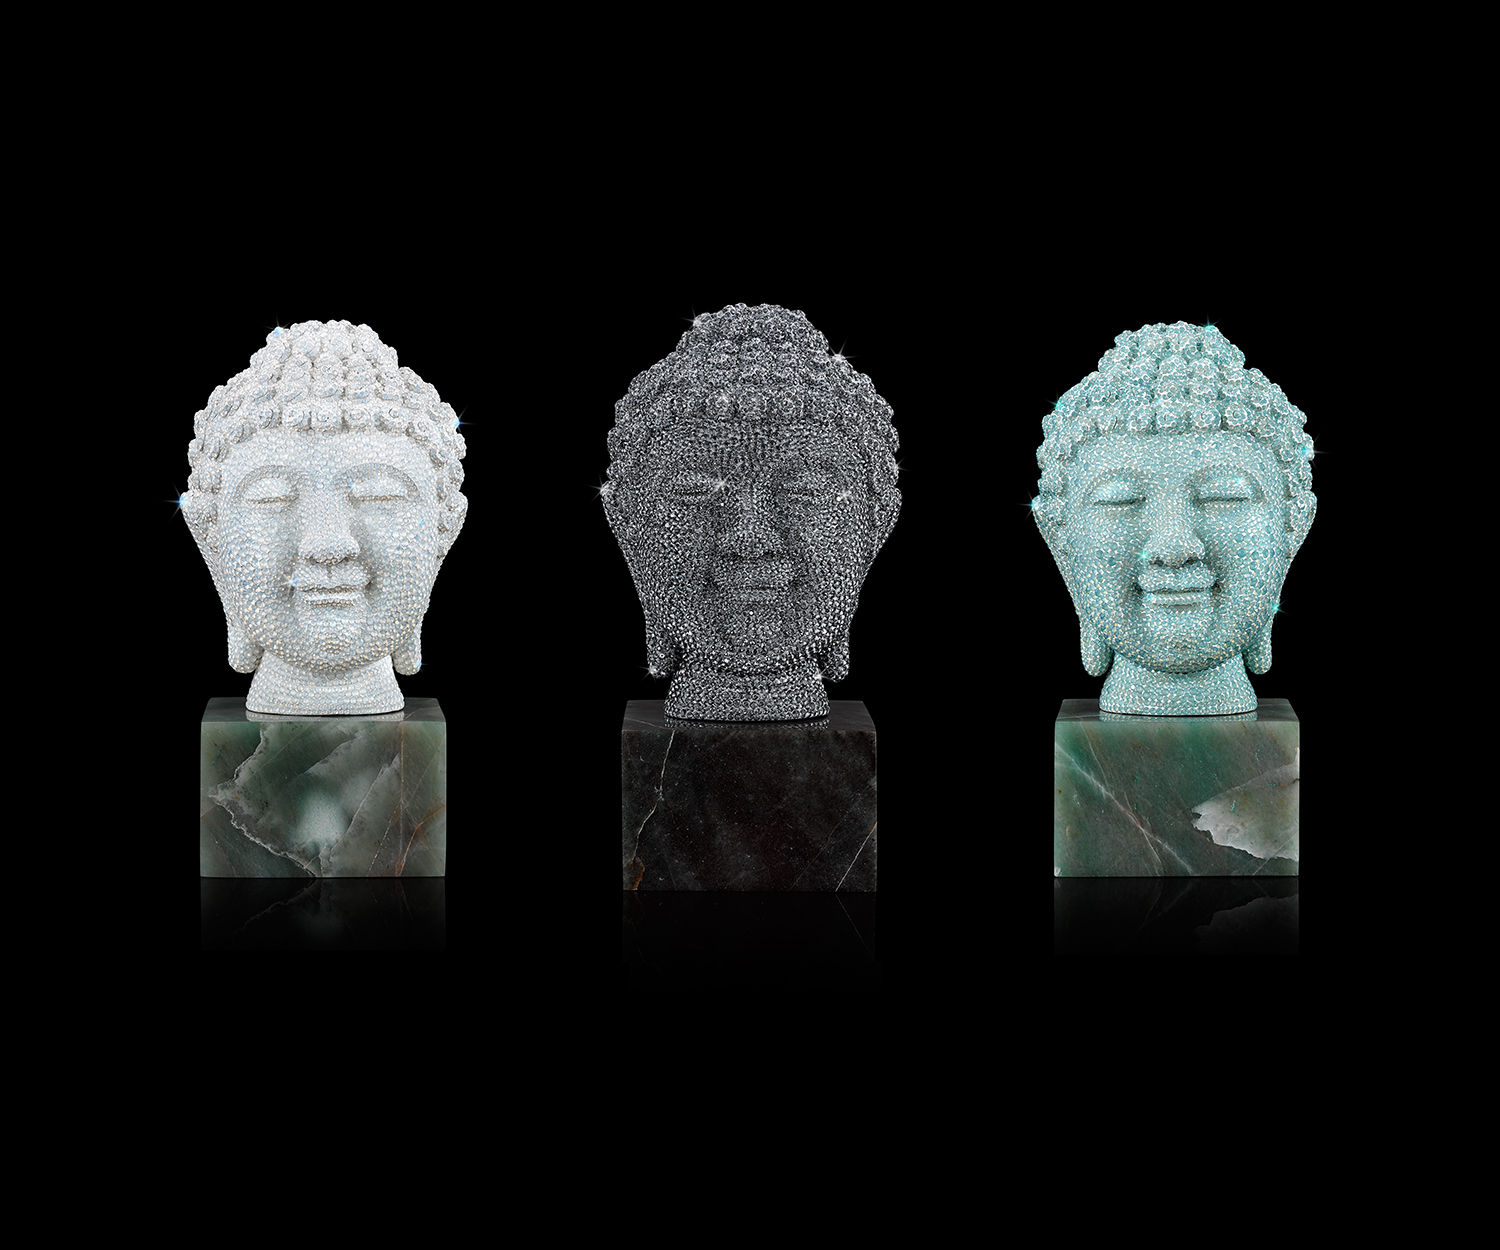 TRANQUILITY (3 BUDDHA HEADS) Crystals on hard resin, natural jade  6.5 x 3.75""